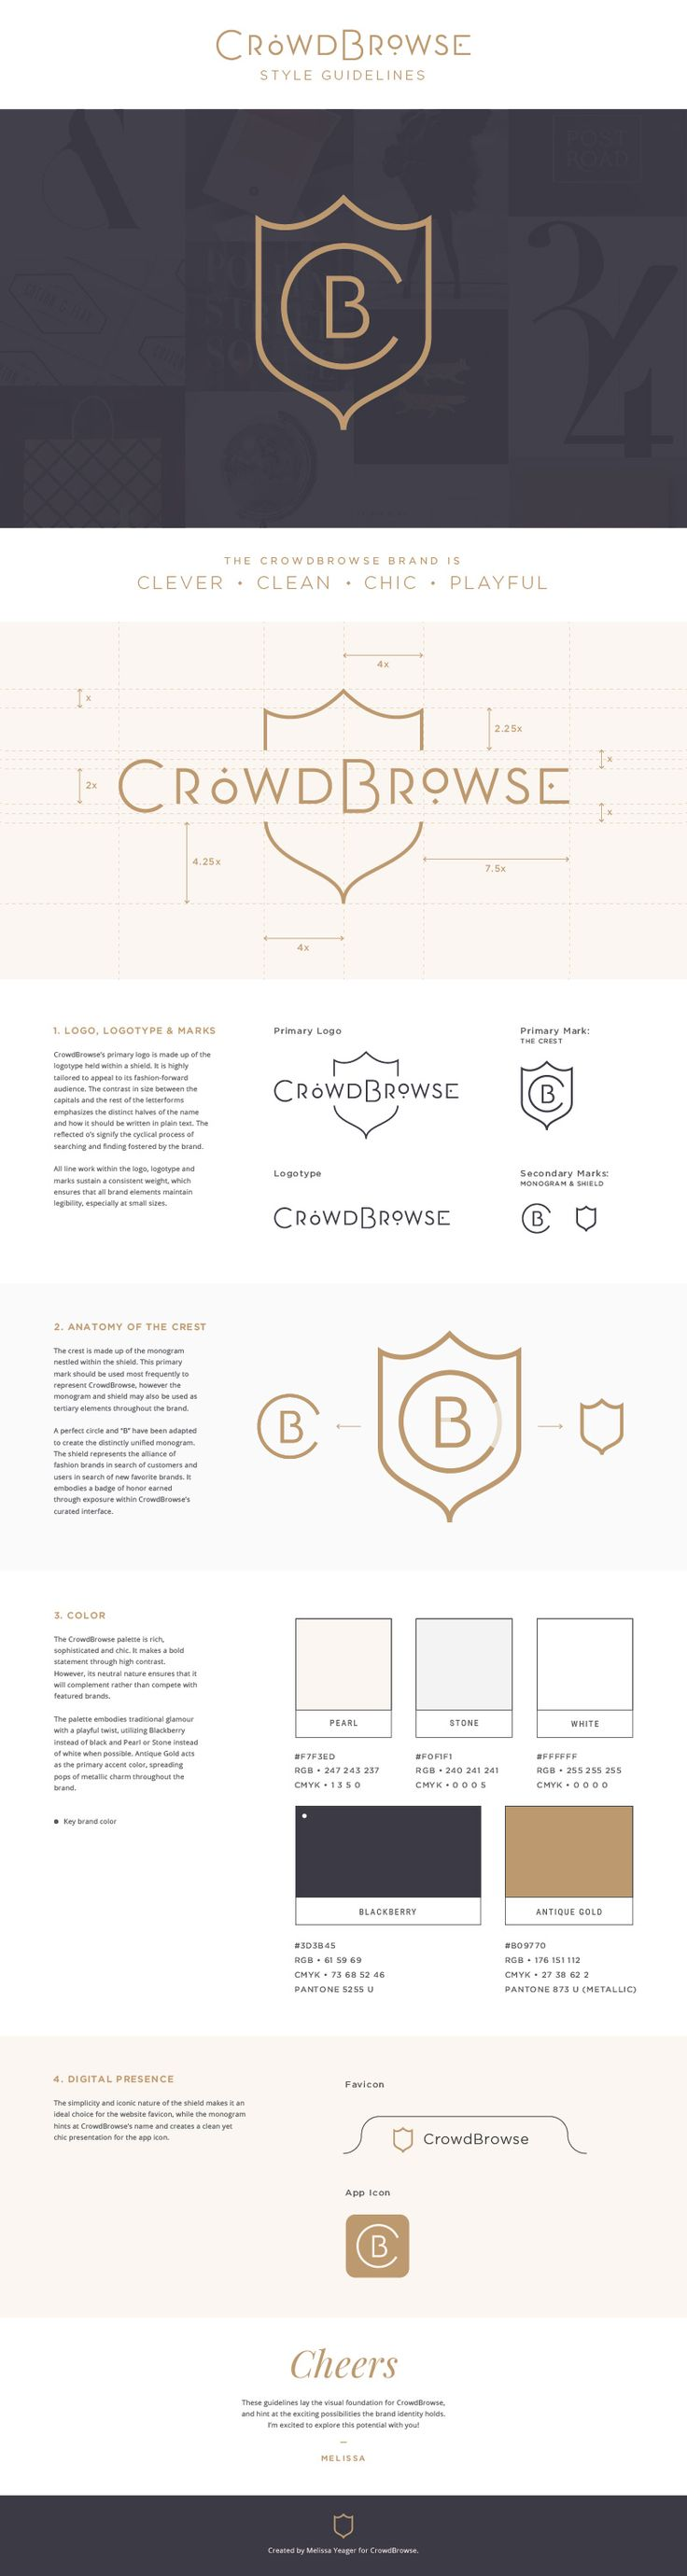 CrowdBrowse logo design & brand guidelines - Melissa Yeager